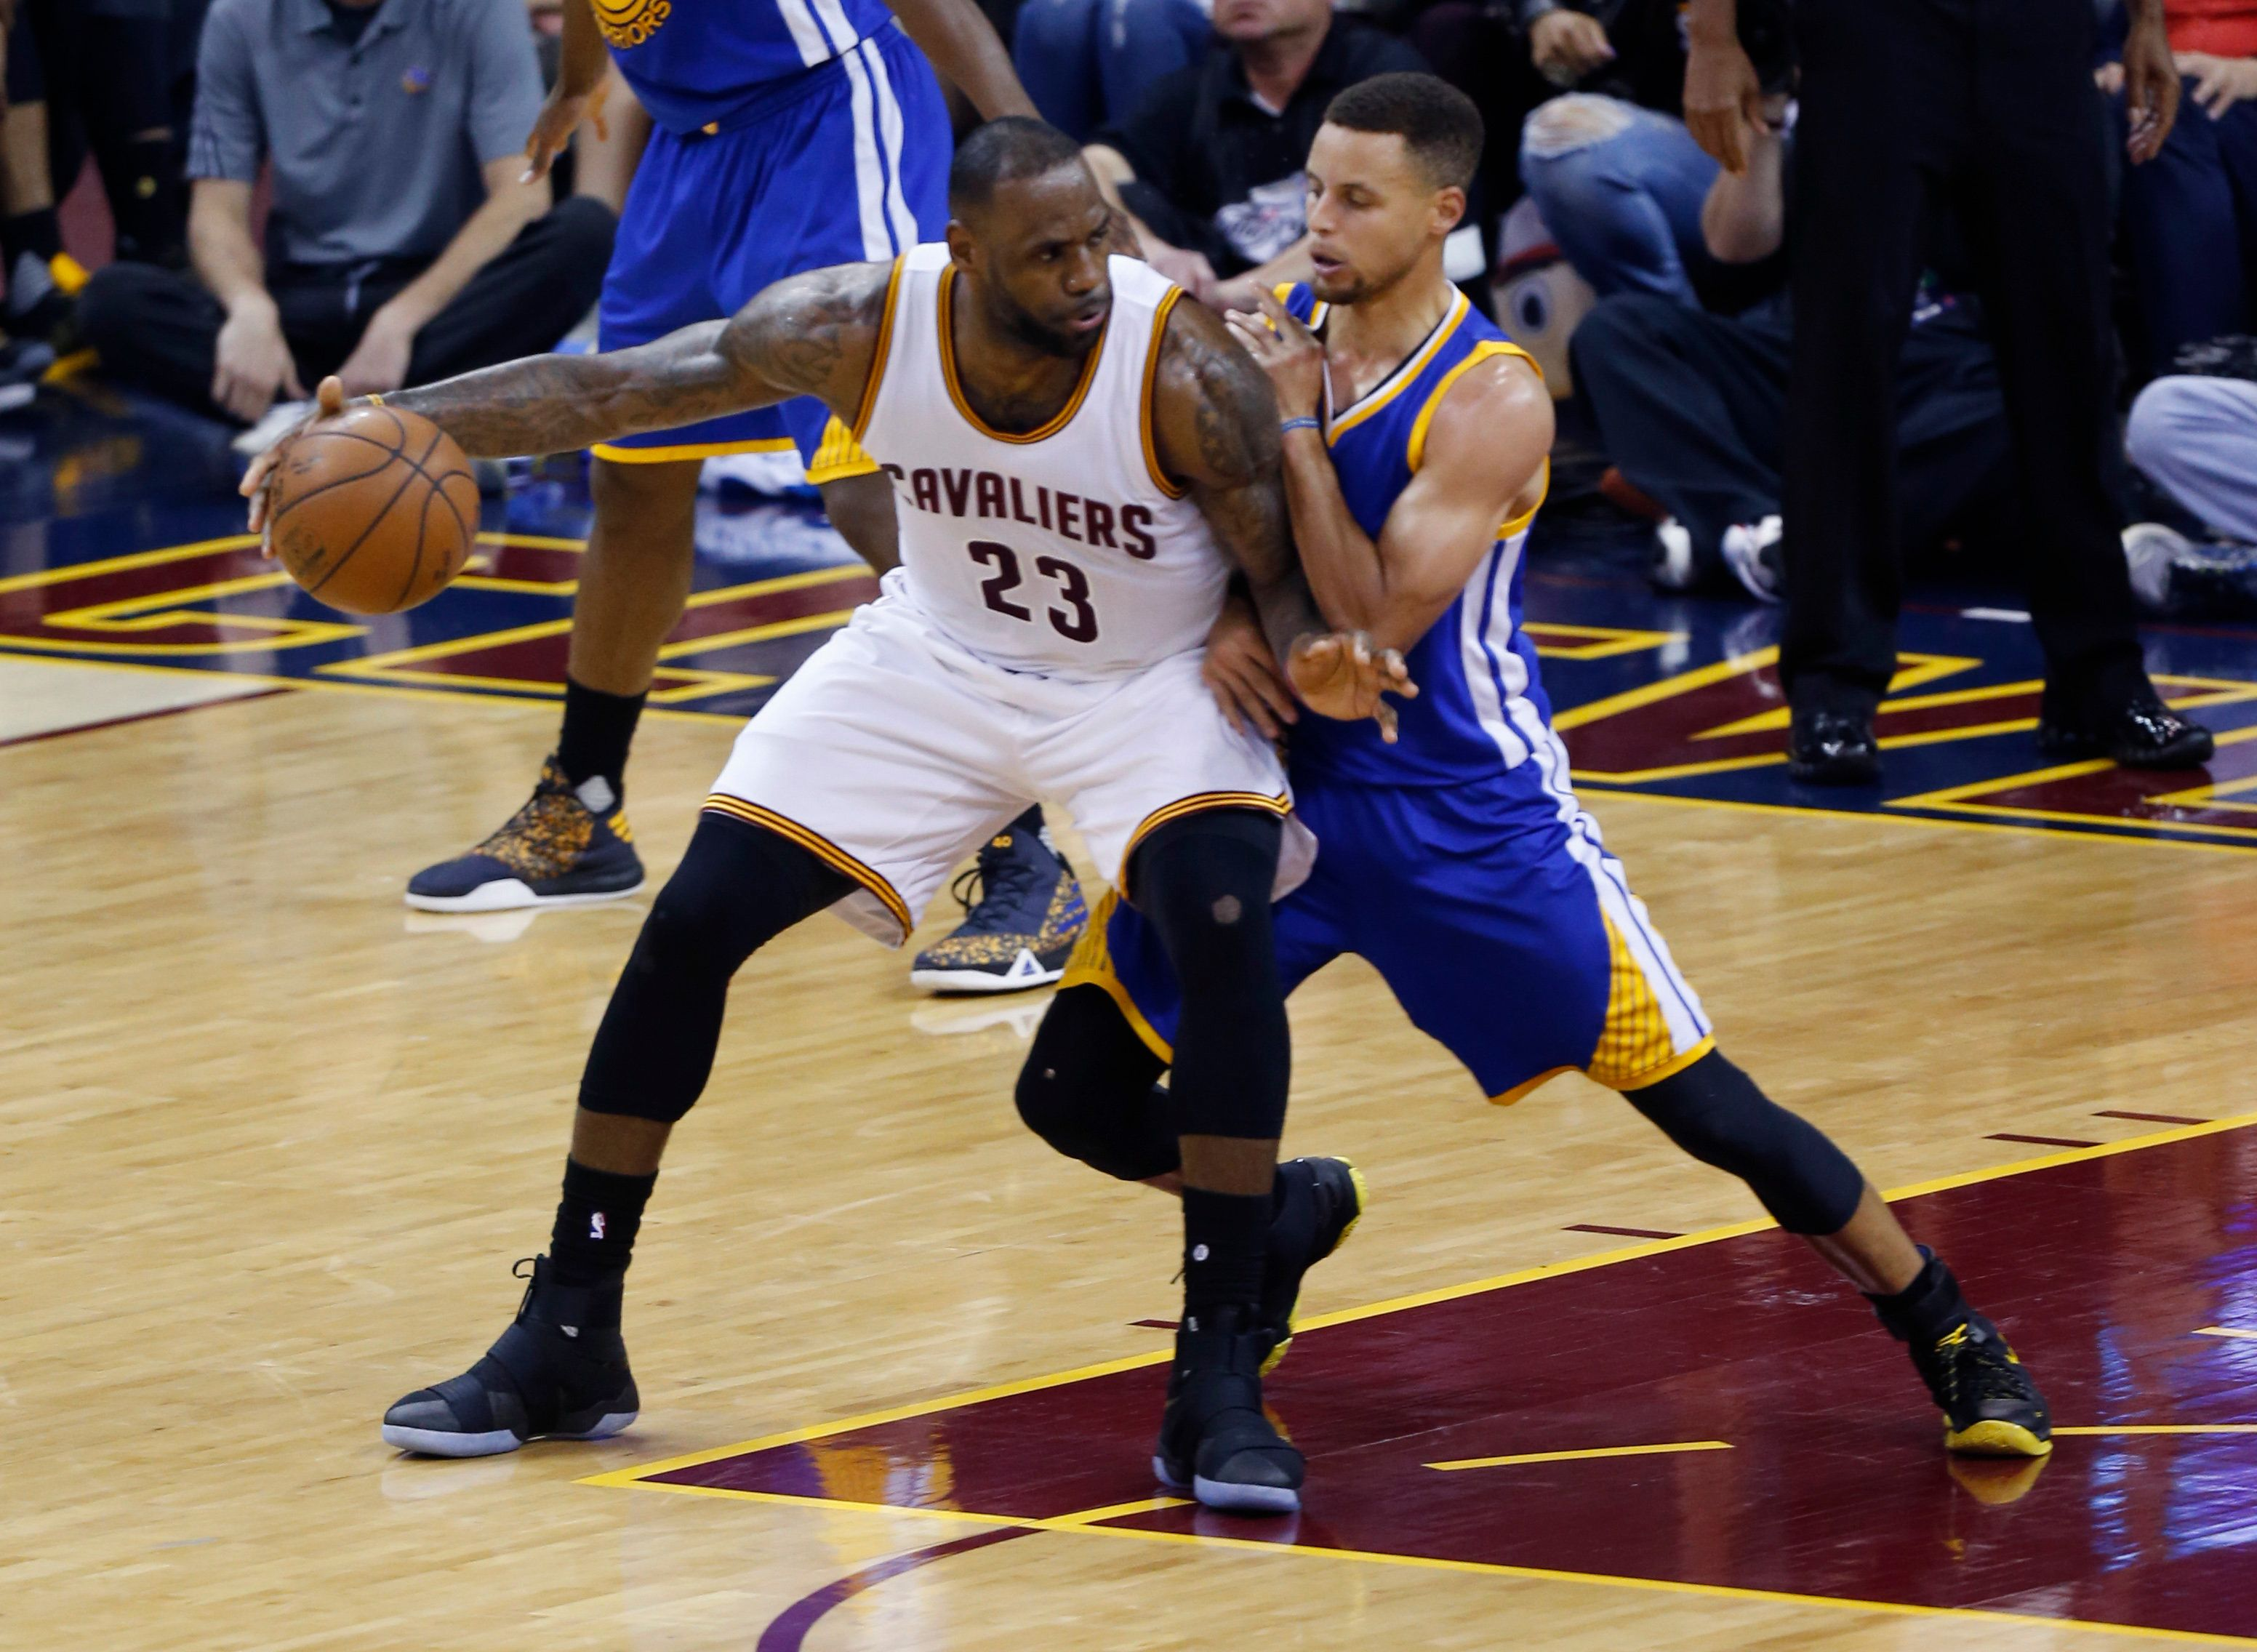 Cleveland Cavaliers forward LeBron James (L) posts up against Golden State Warriors guard Stephen Curry (R) during Game 3 of the NBA Finals in Cleveland, Ohio on June 8, 2016. The Cavaliers won Game 3. LeBron James scored 32 points and Kyrie Irving added 30, powering Cleveland over defending champion Golden State 120-90 to lift the Cavaliers back into contention in the NBA Finals. Despite the blowout loss, the Warriors remain ahead 2-1 in the best-of-seven series.  / AFP / Jay LaPrete        (Photo credit should read JAY LAPRETE/AFP/Getty Images)